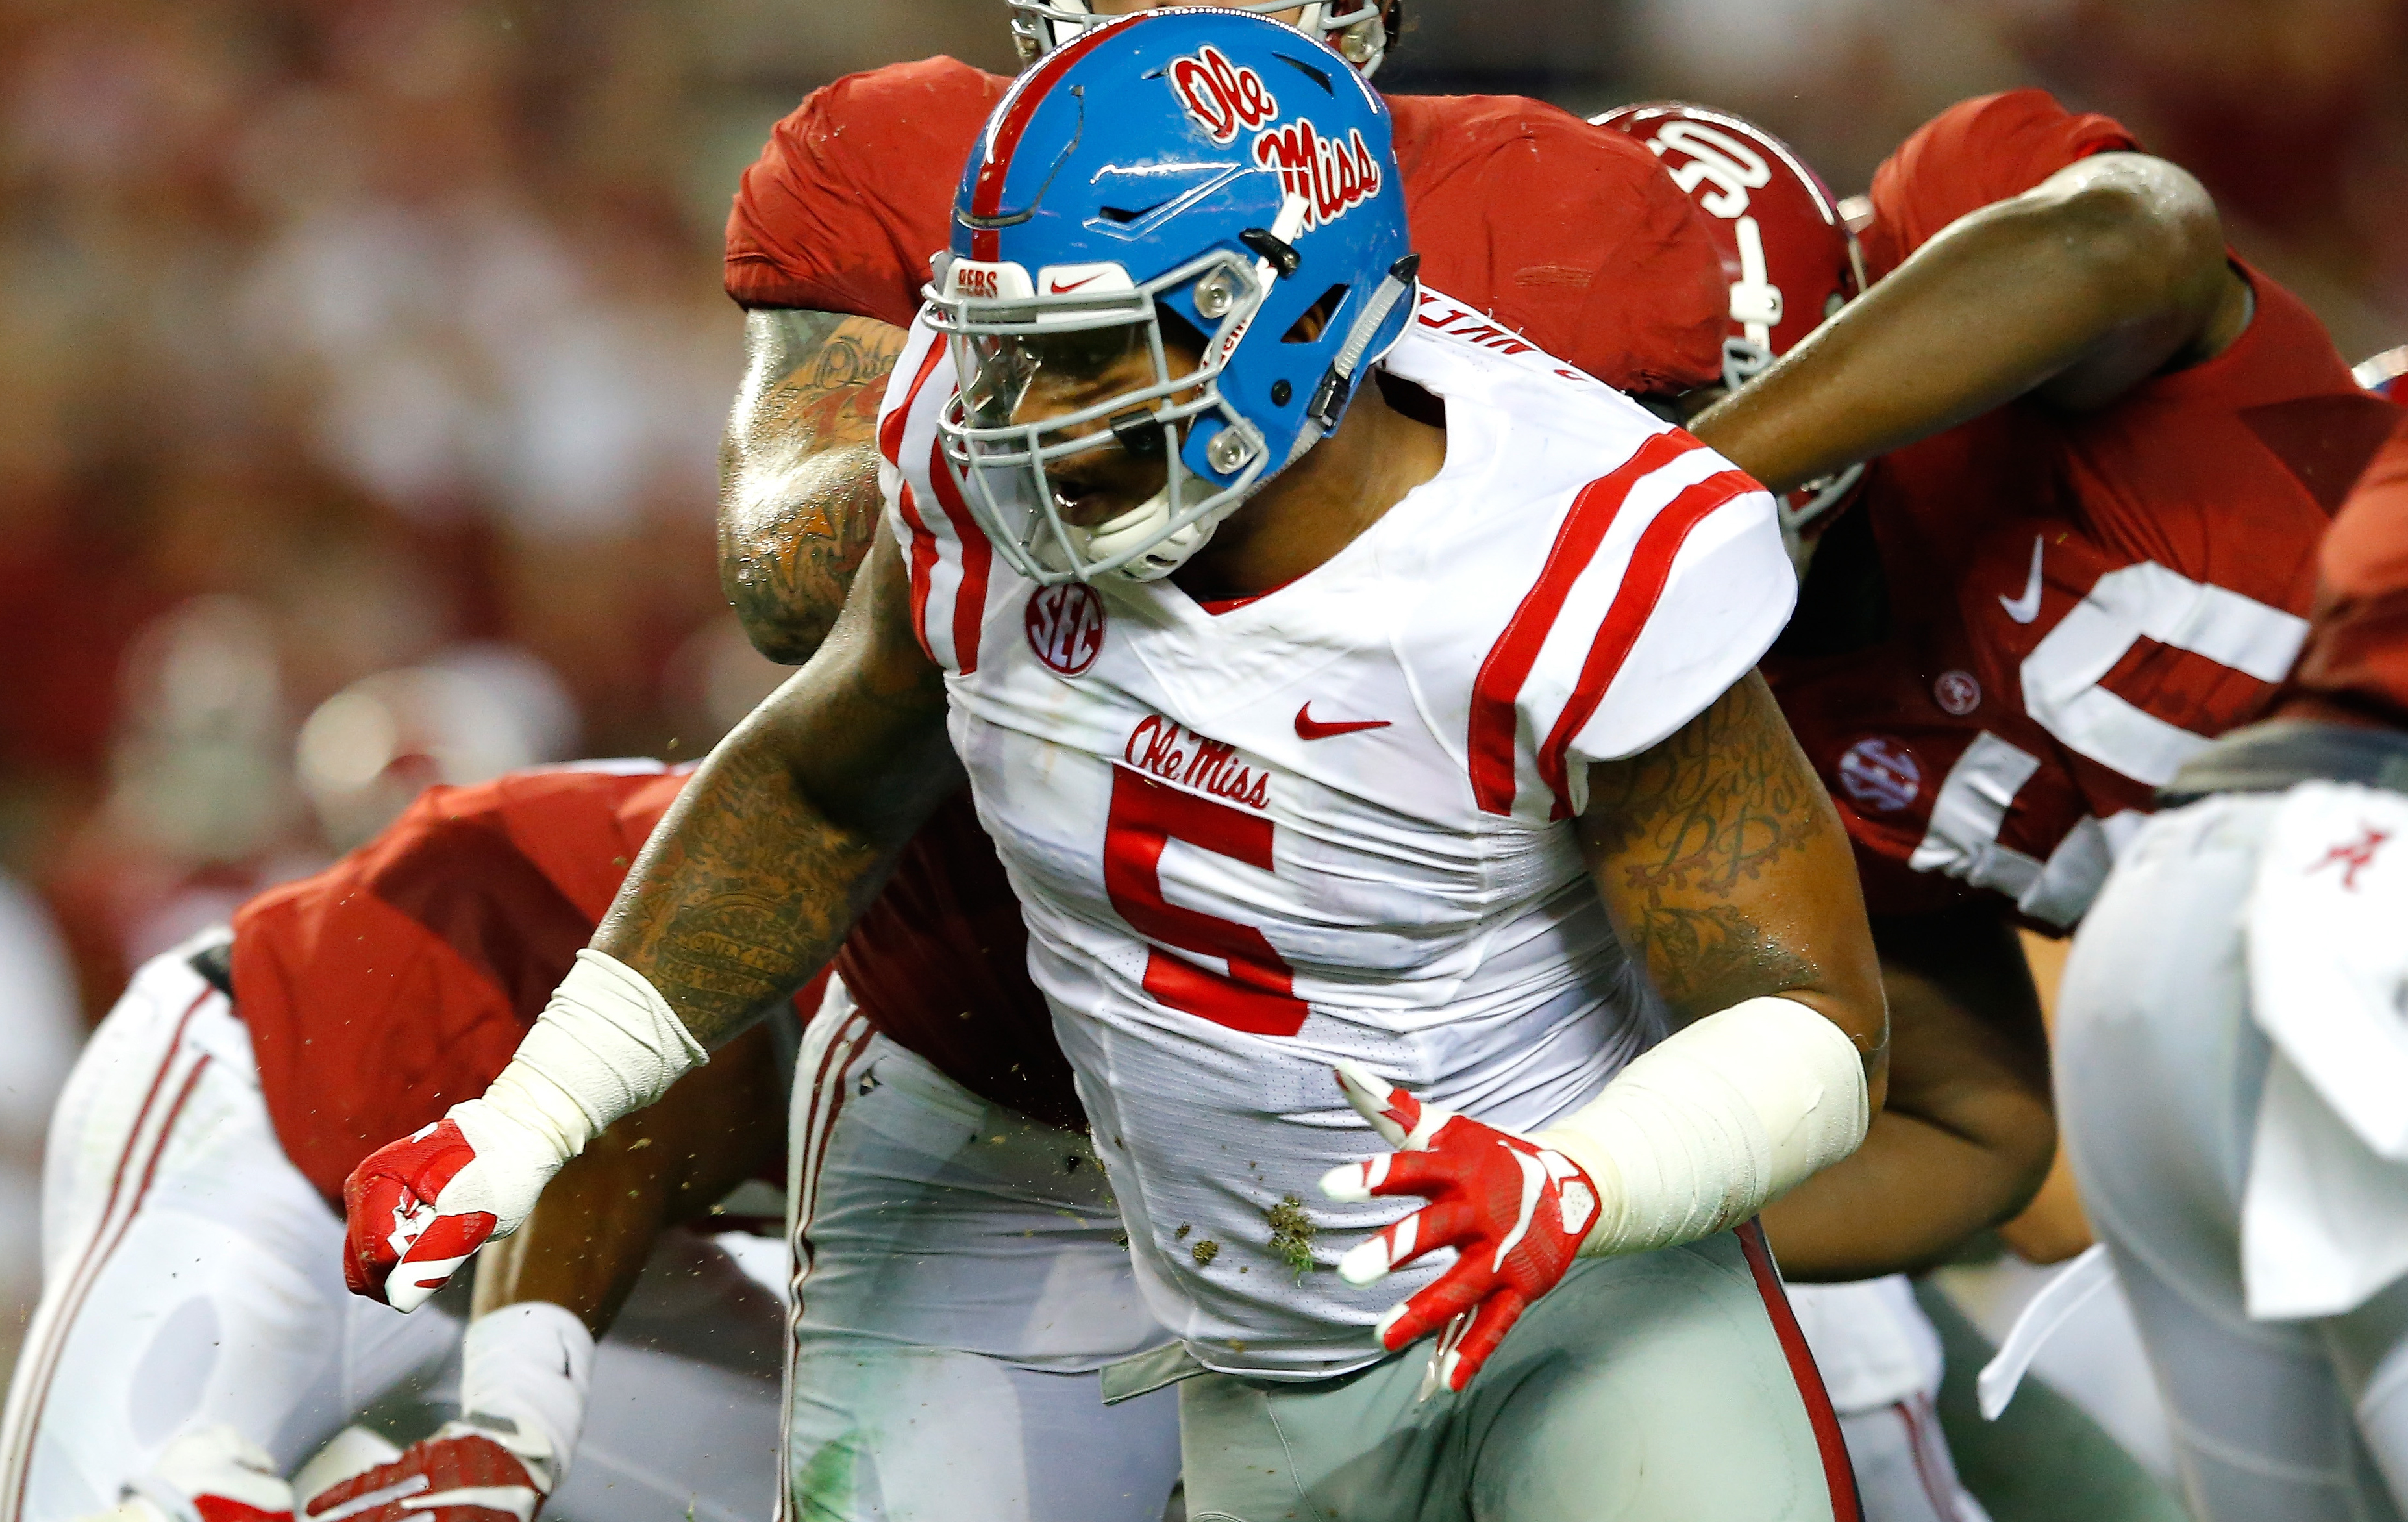 TUSCALOOSA, AL - SEPTEMBER 19:  Robert Nkemdiche #5 of the Mississippi Rebels in action against Alabama Crimson Tide at Bryant-Denny Stadium on September 19, 2015 in Tuscaloosa, Alabama.  (Photo by Kevin C. Cox/Getty Images)